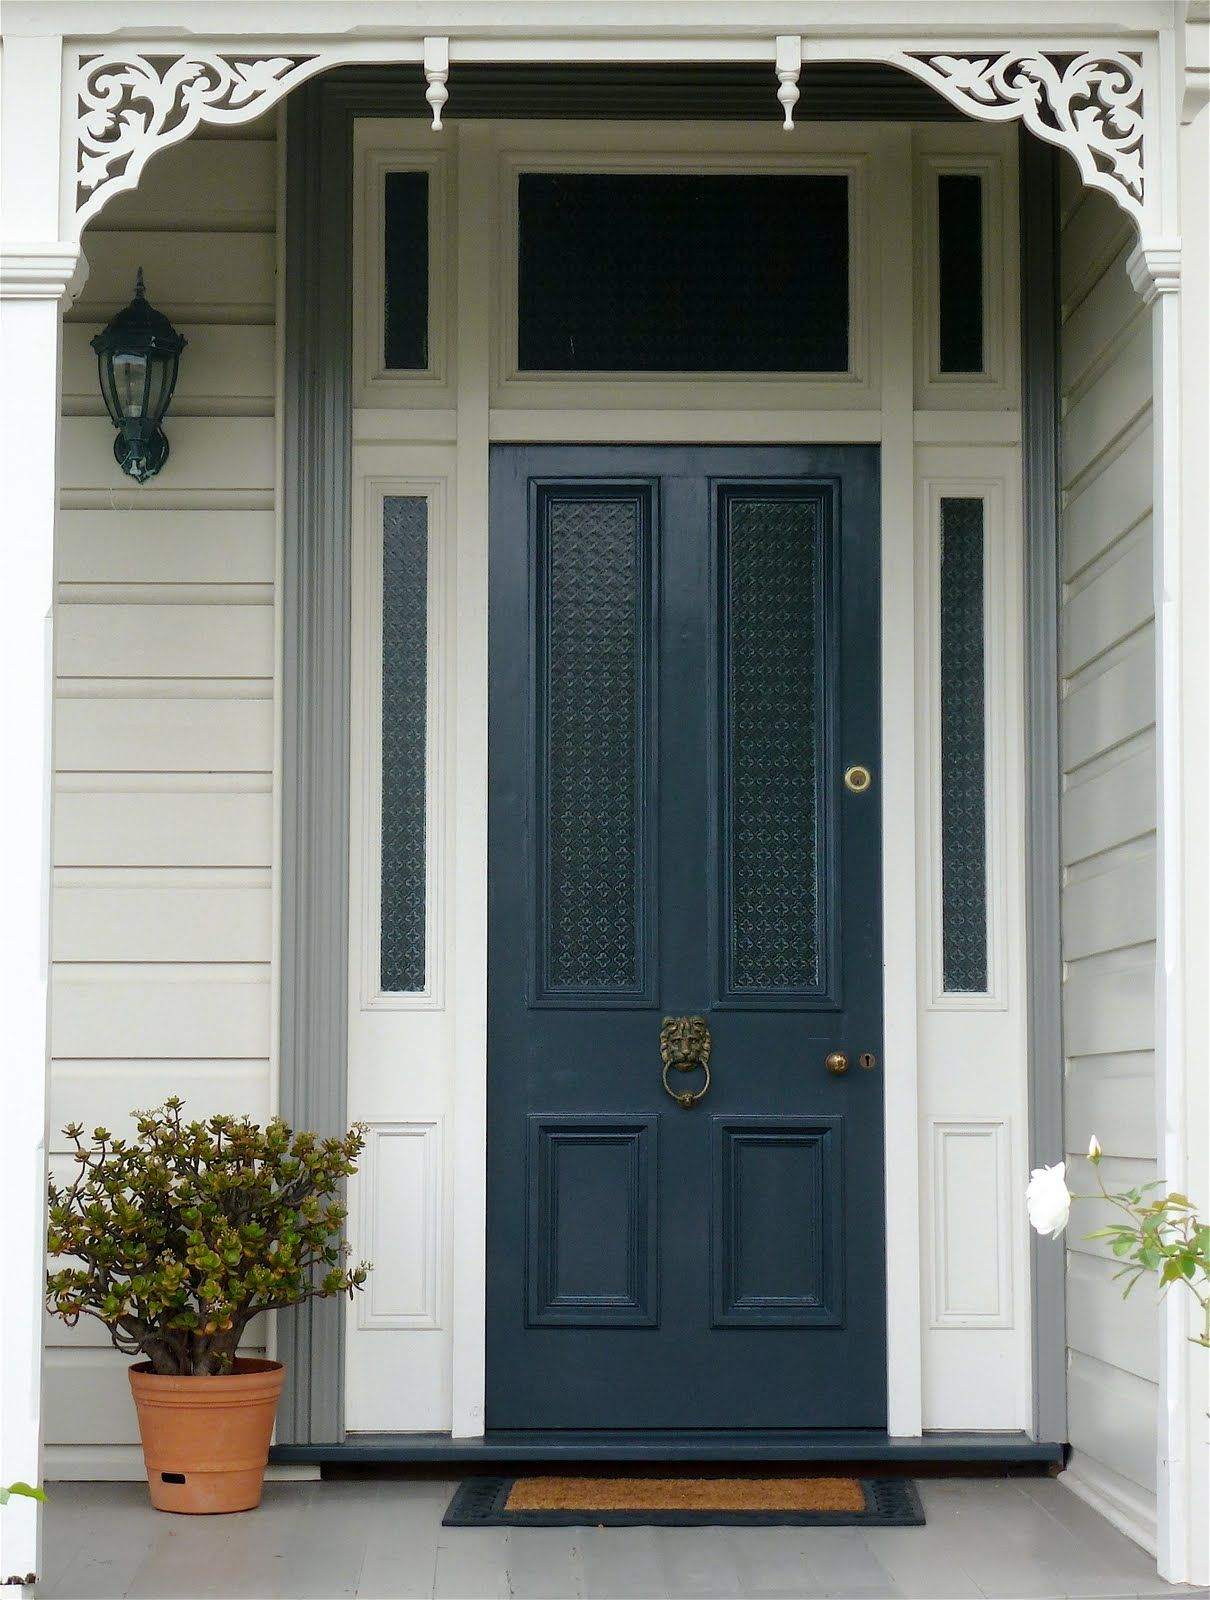 My villa life villa doors front doors pinterest villas love this blue door makes a change from black i love a painted front door and this is a color my conservative husband might approve of rubansaba